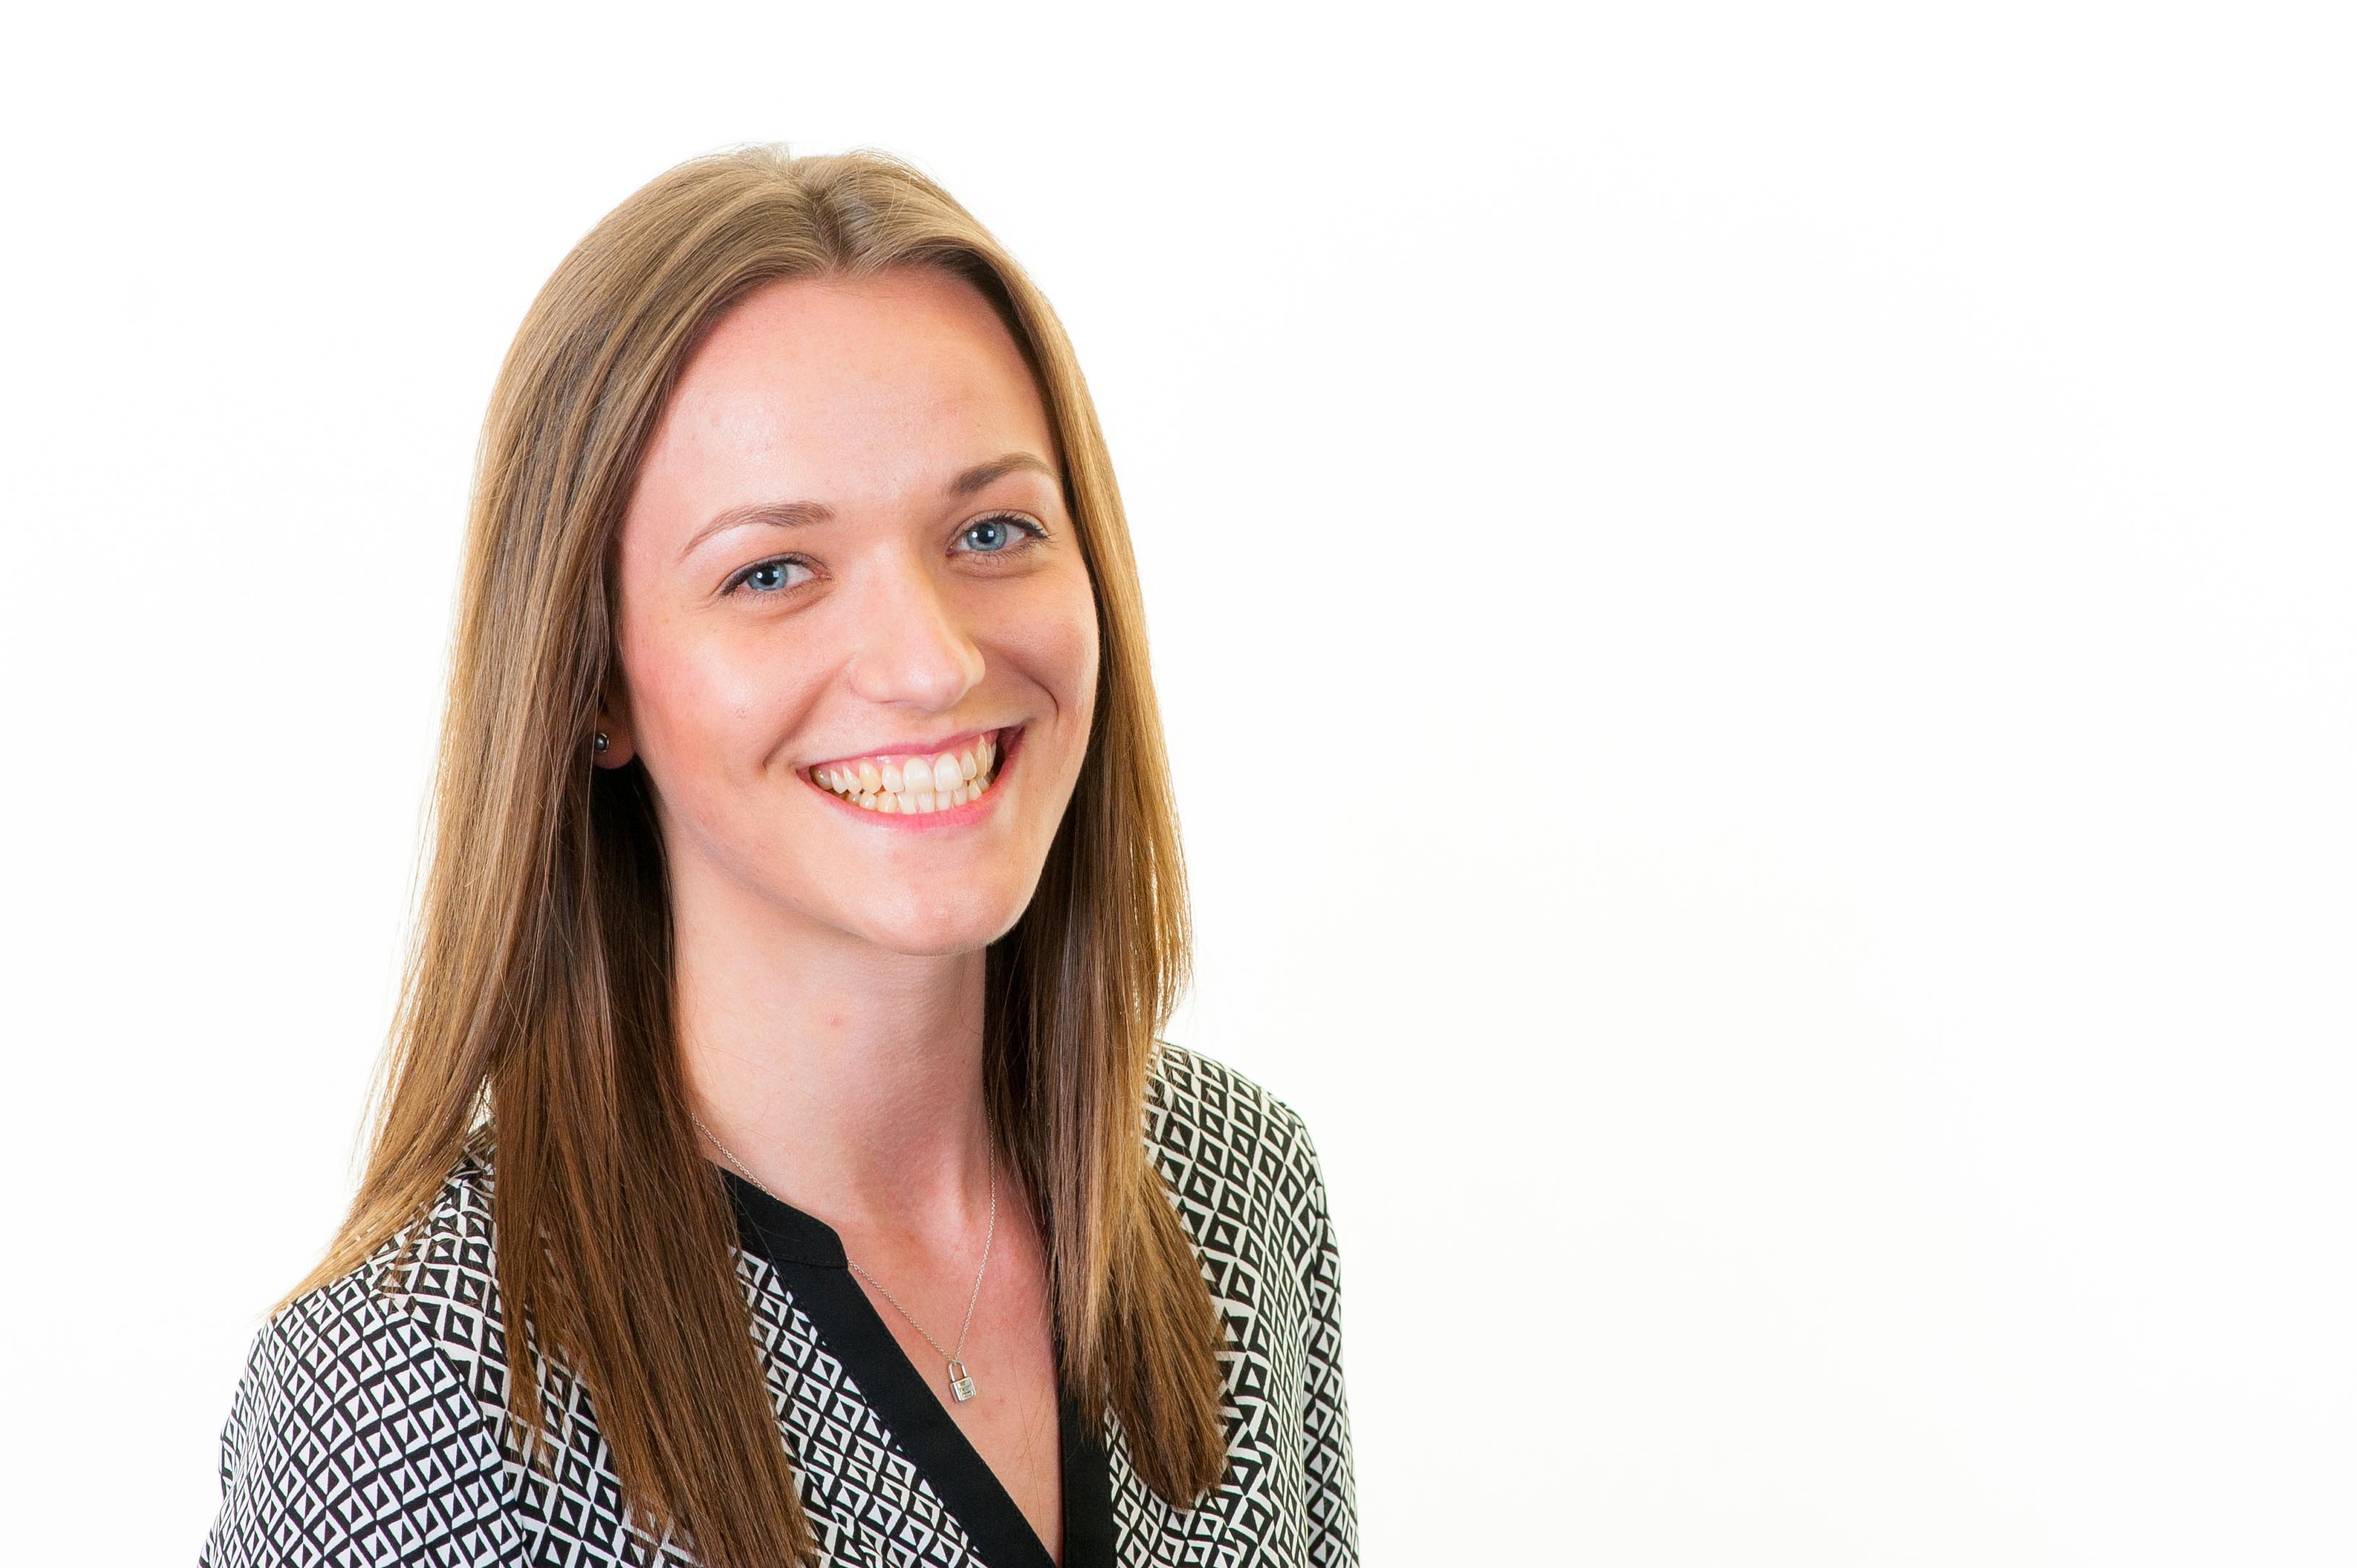 Our smiley new Client Account Manager, Sara Glaister